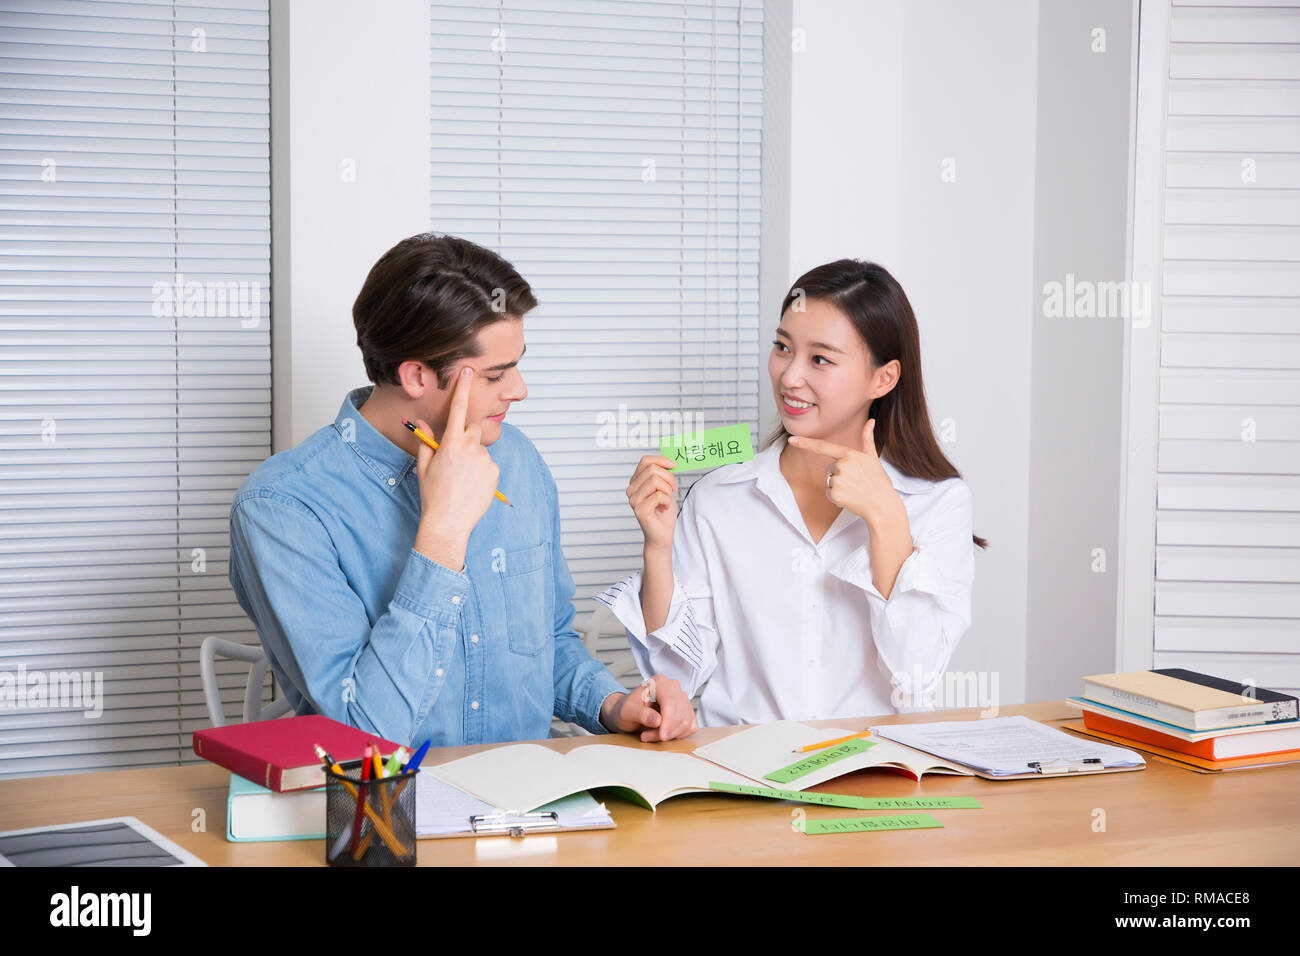 Conceptual photo study another foreign language on/off line verbal courses 029 - Stock Image